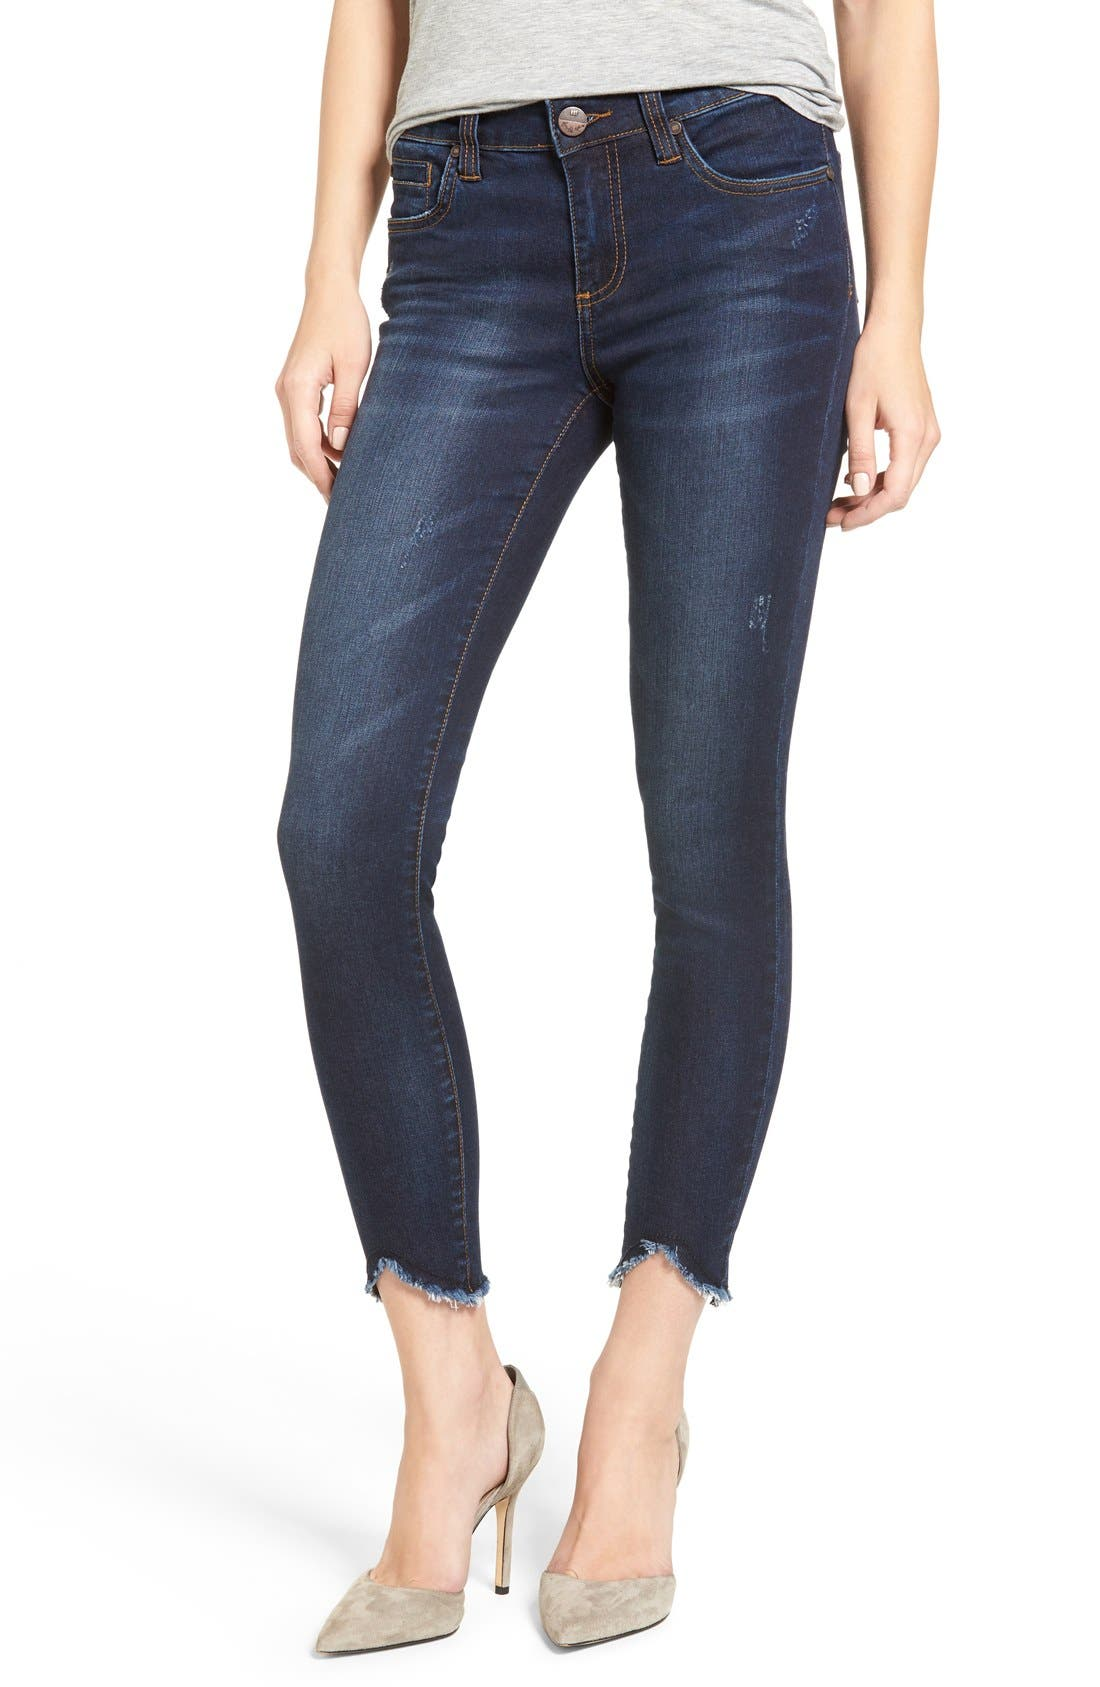 KUT FROM THE KLOTH Raw Hem Skinny Jeans